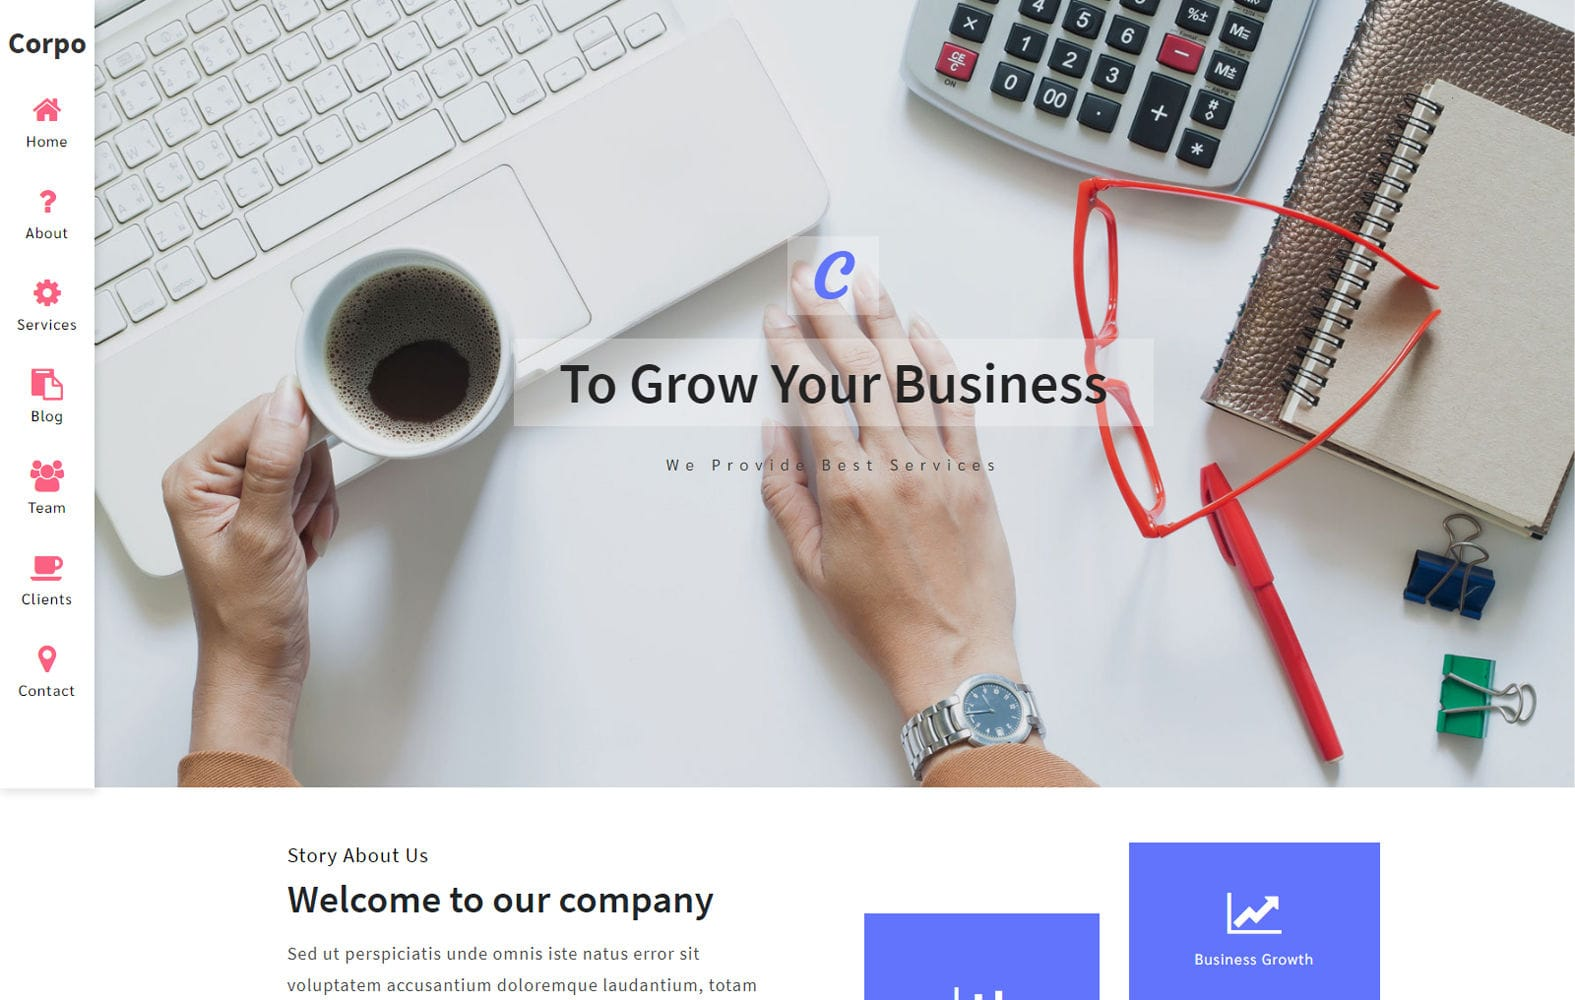 Corpo a Corporate Category Bootstrap Responsive Web Template